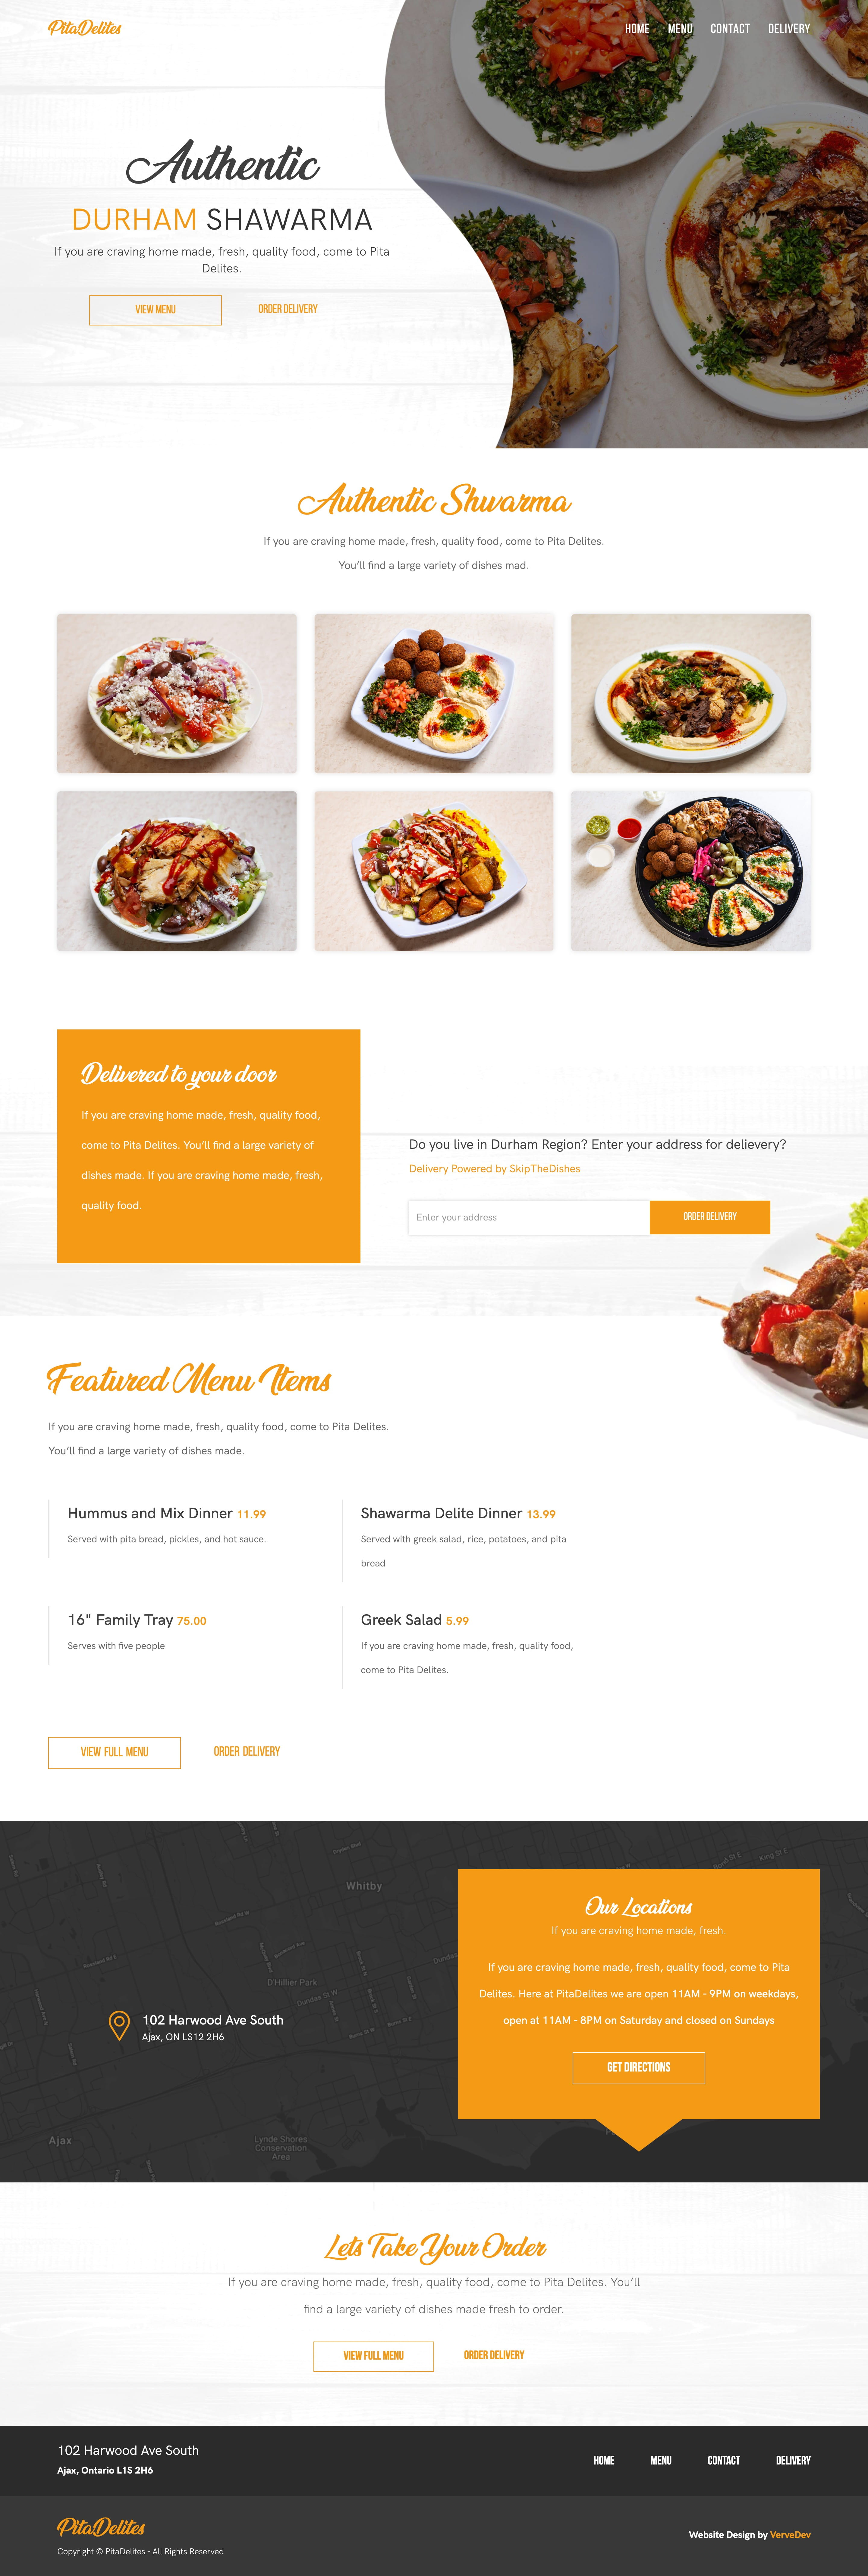 vaughan-website-design-portfolio-1